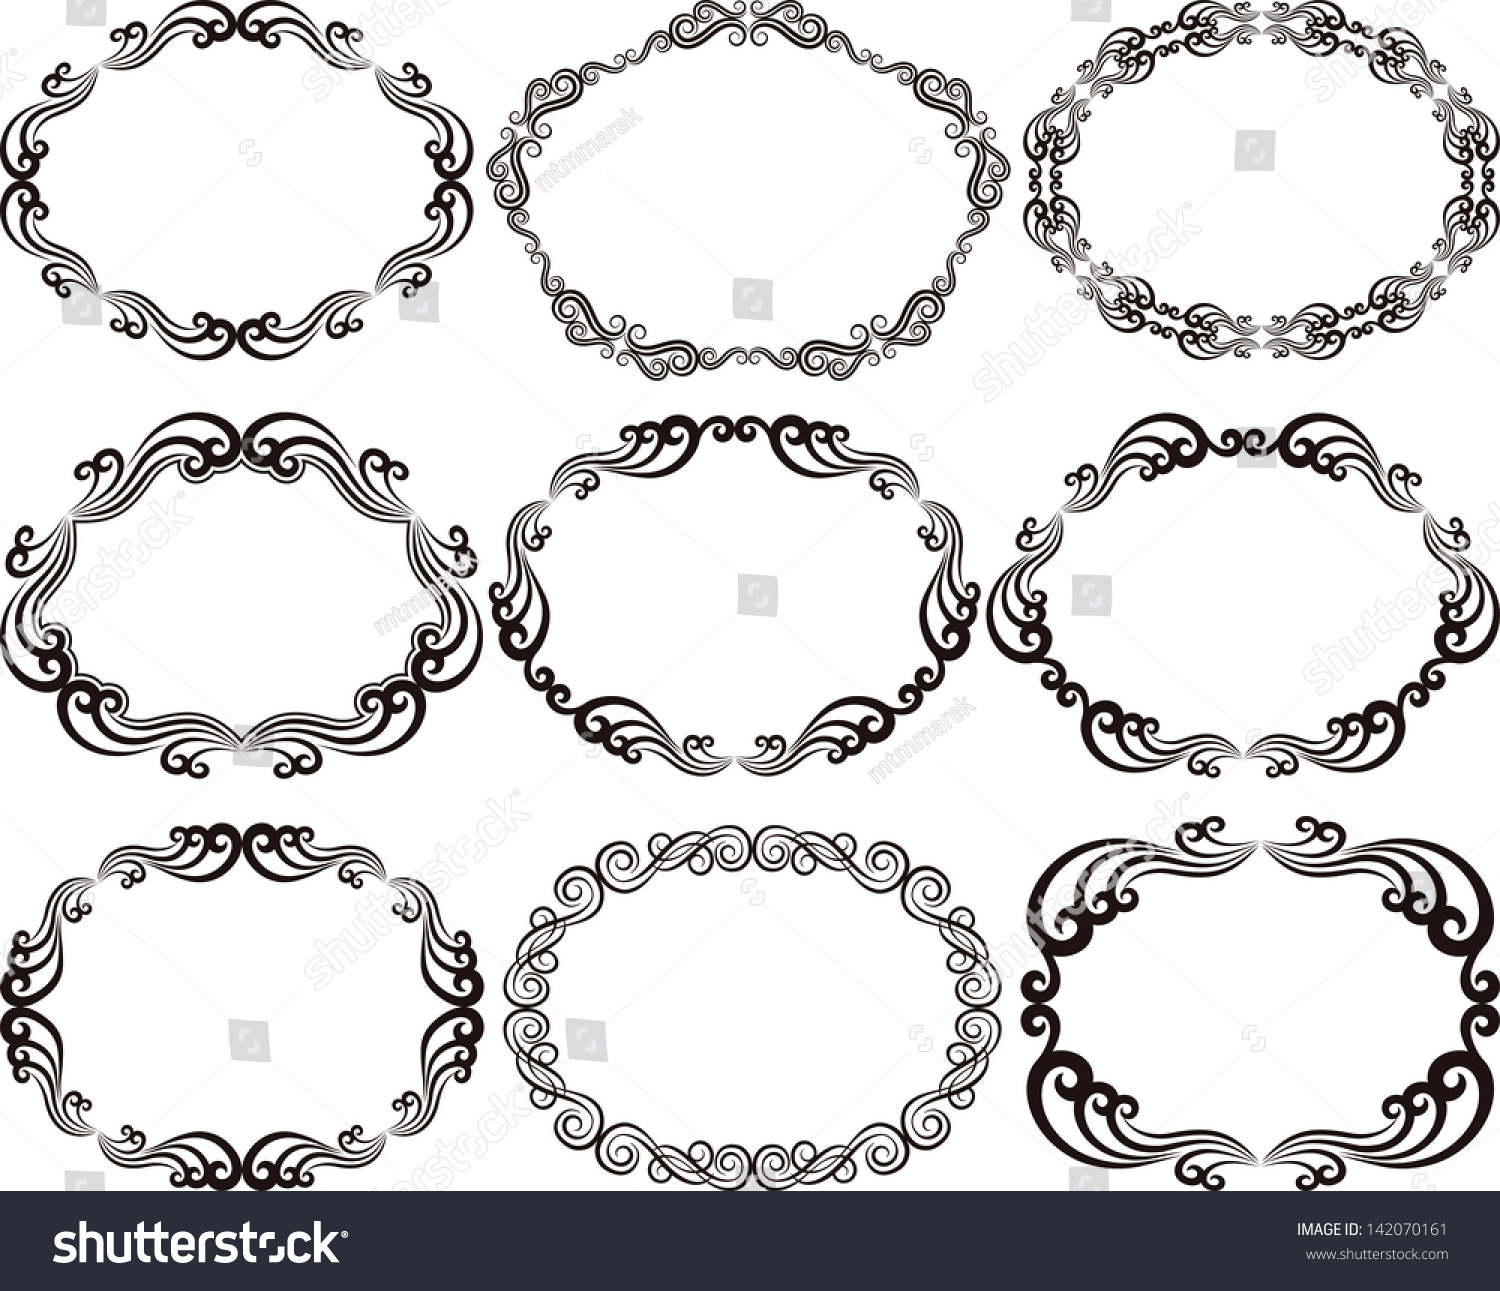 decorative frames oval - Decorative Frames